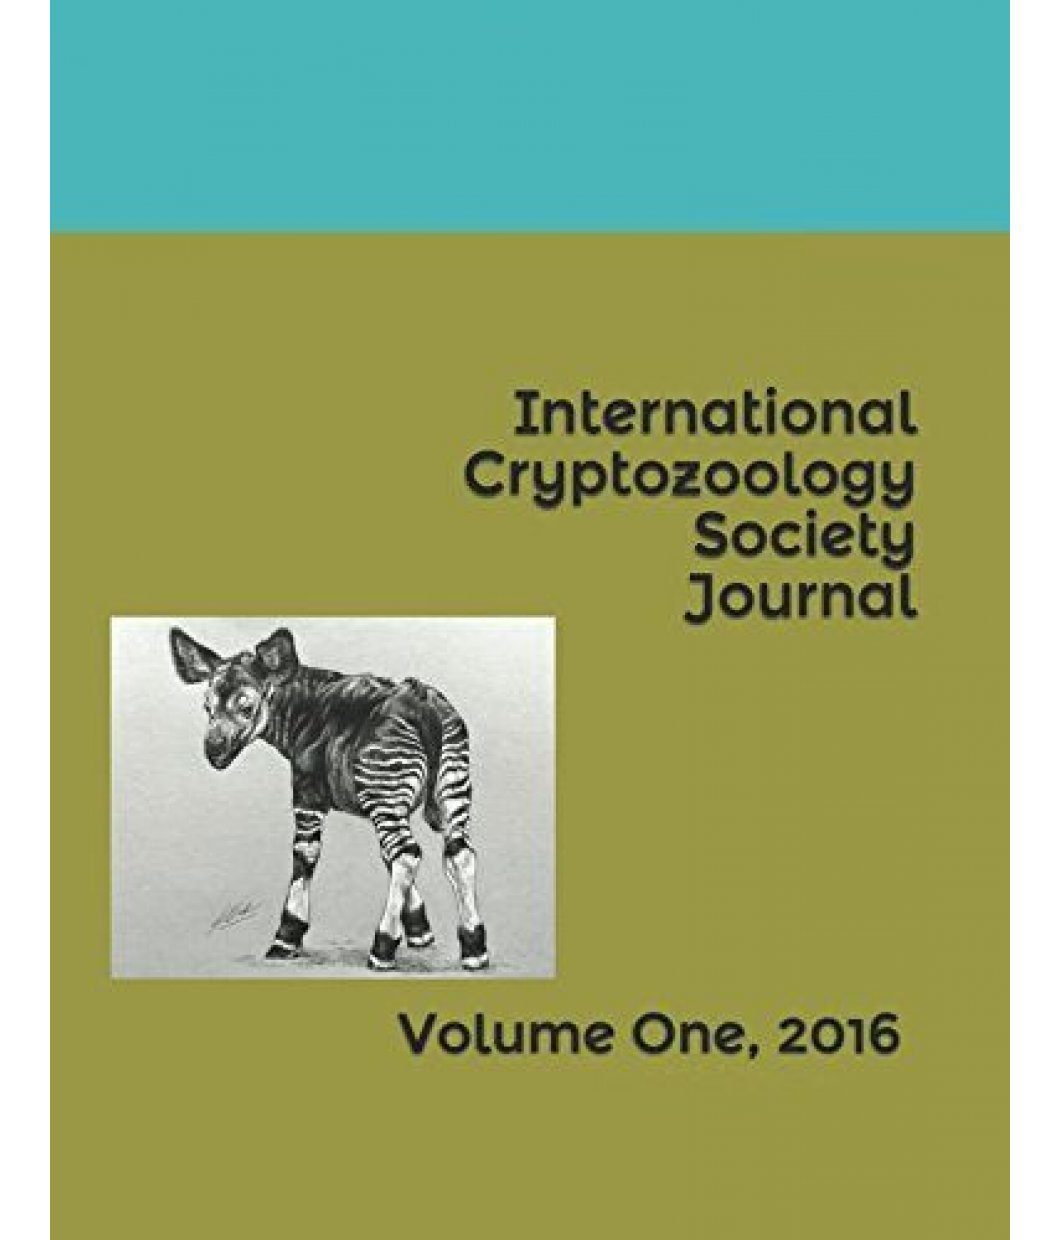 International Cryptozoology Society, Volume 1